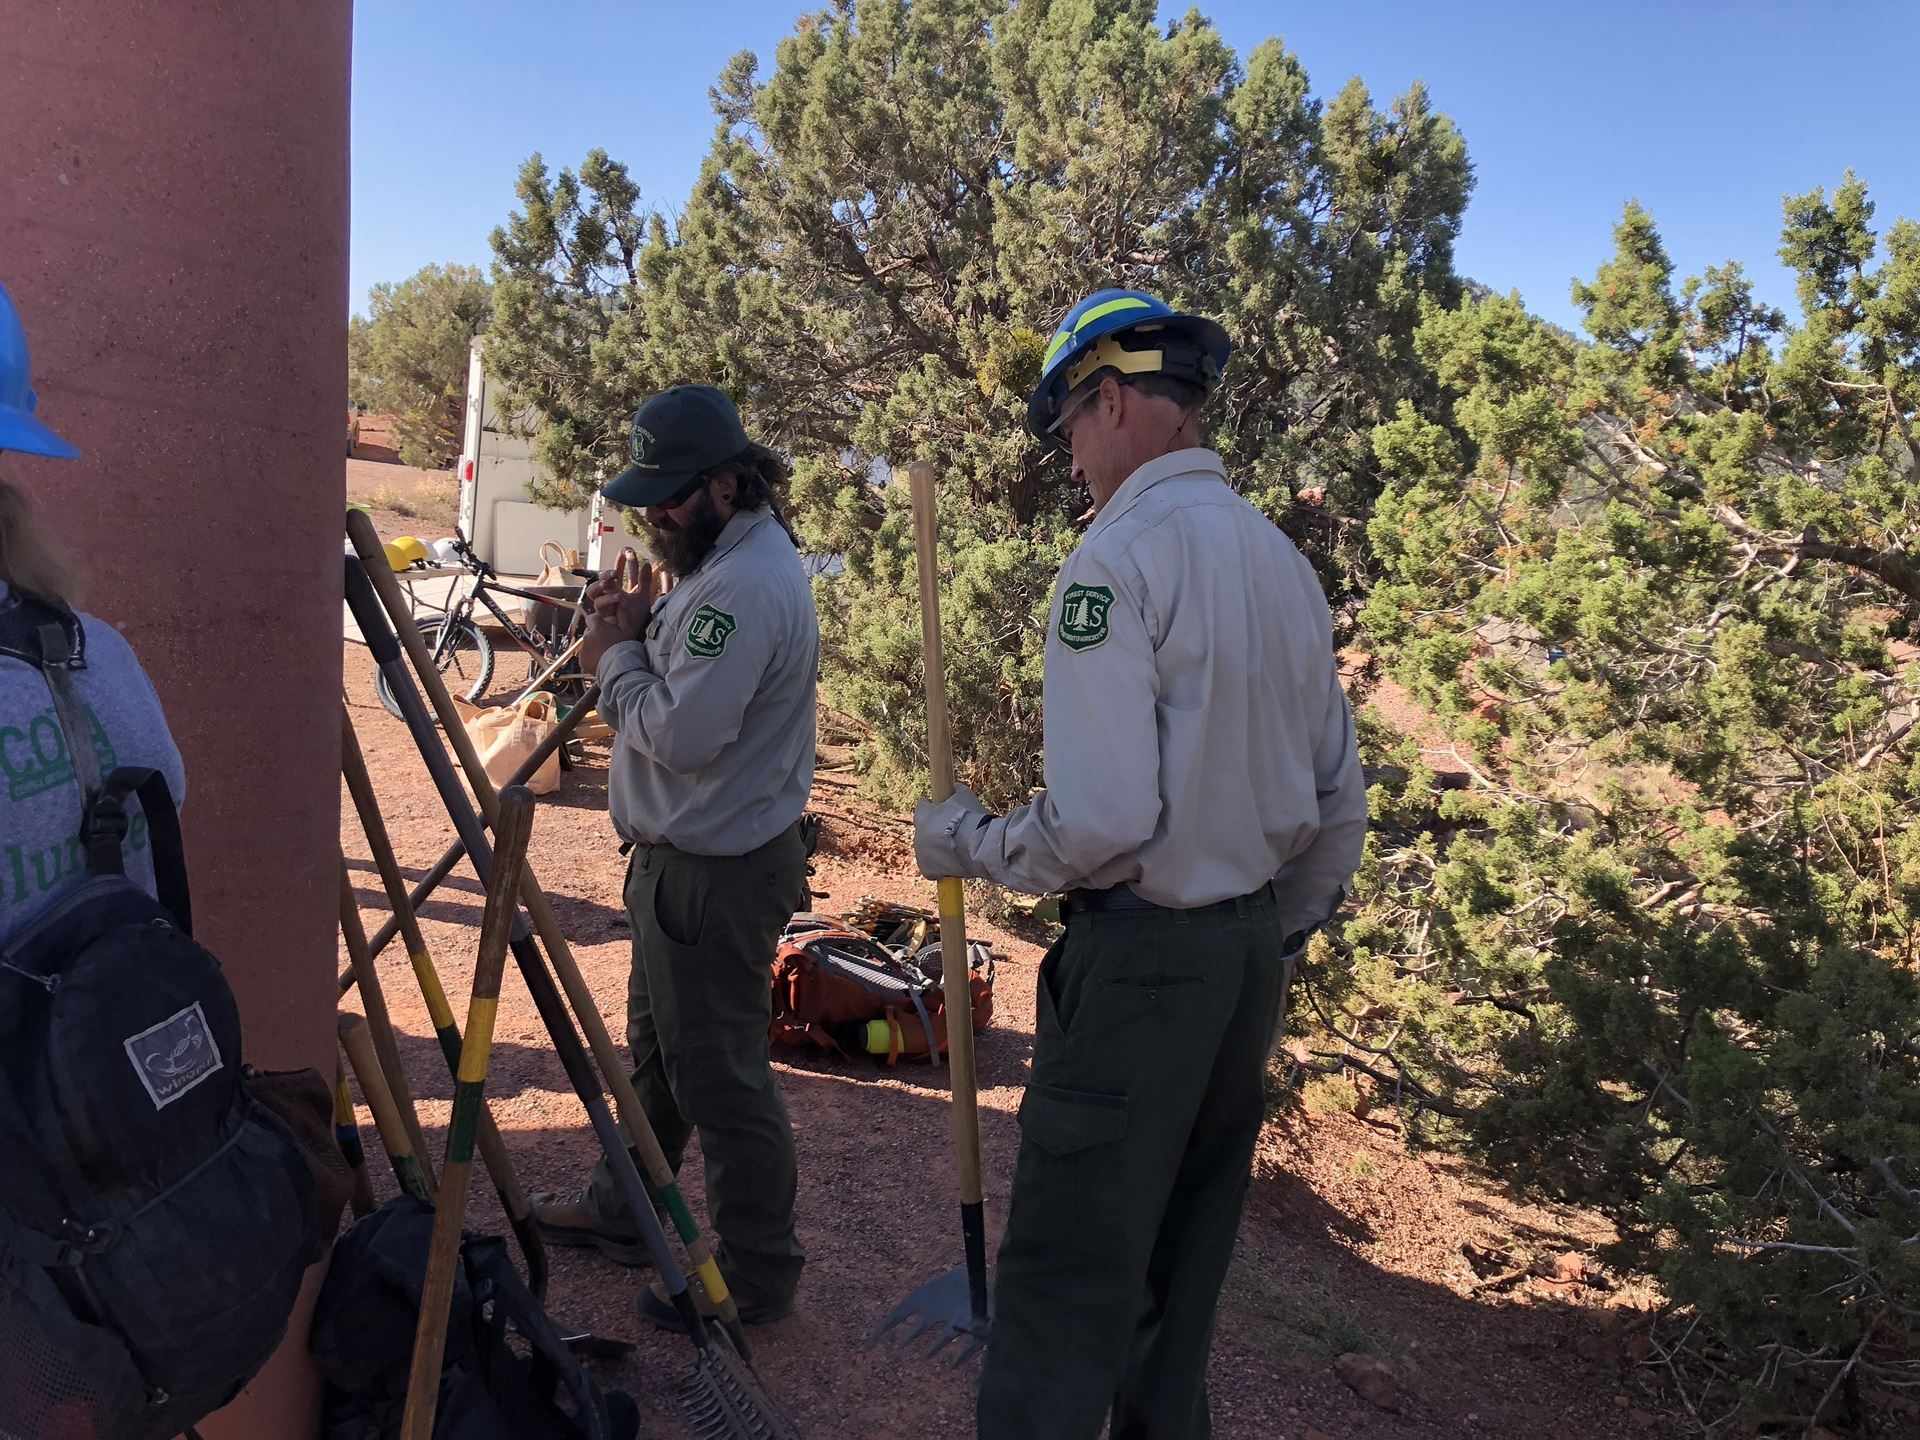 Verde Valley Cyclists Coalition Trail Work Day Season Wraps Up